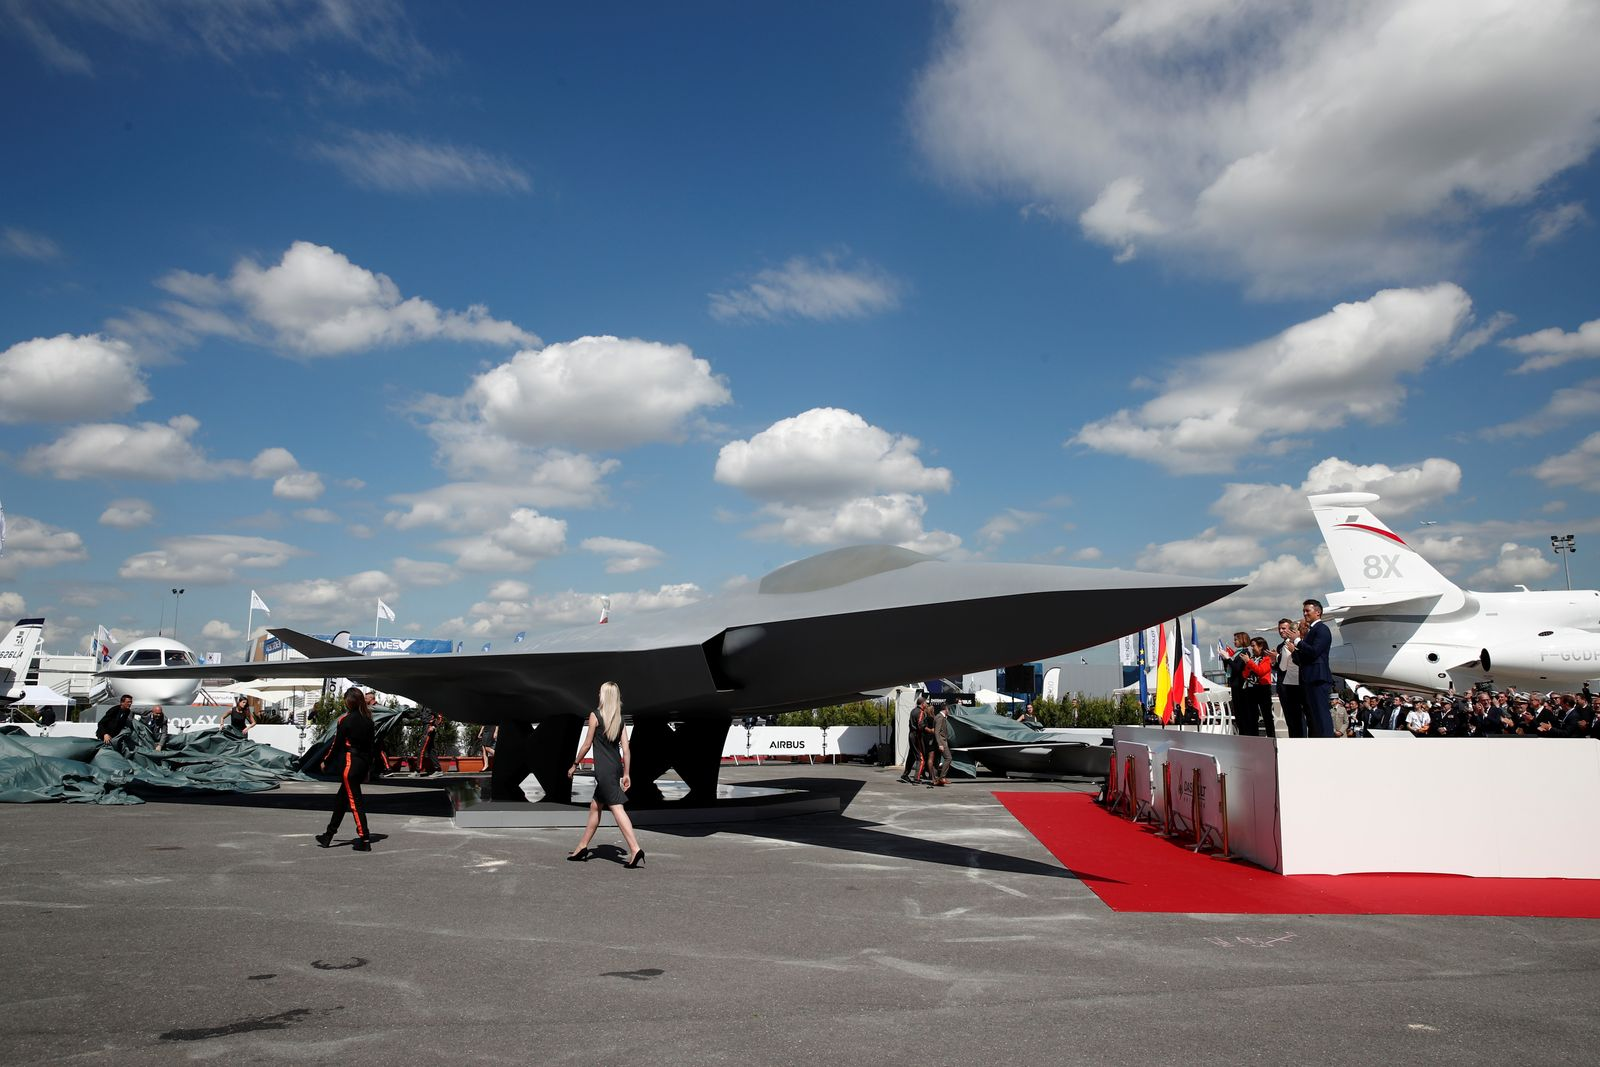 New Generation Fighter (NGF) / Paris Air Show at Le Bourget Airport